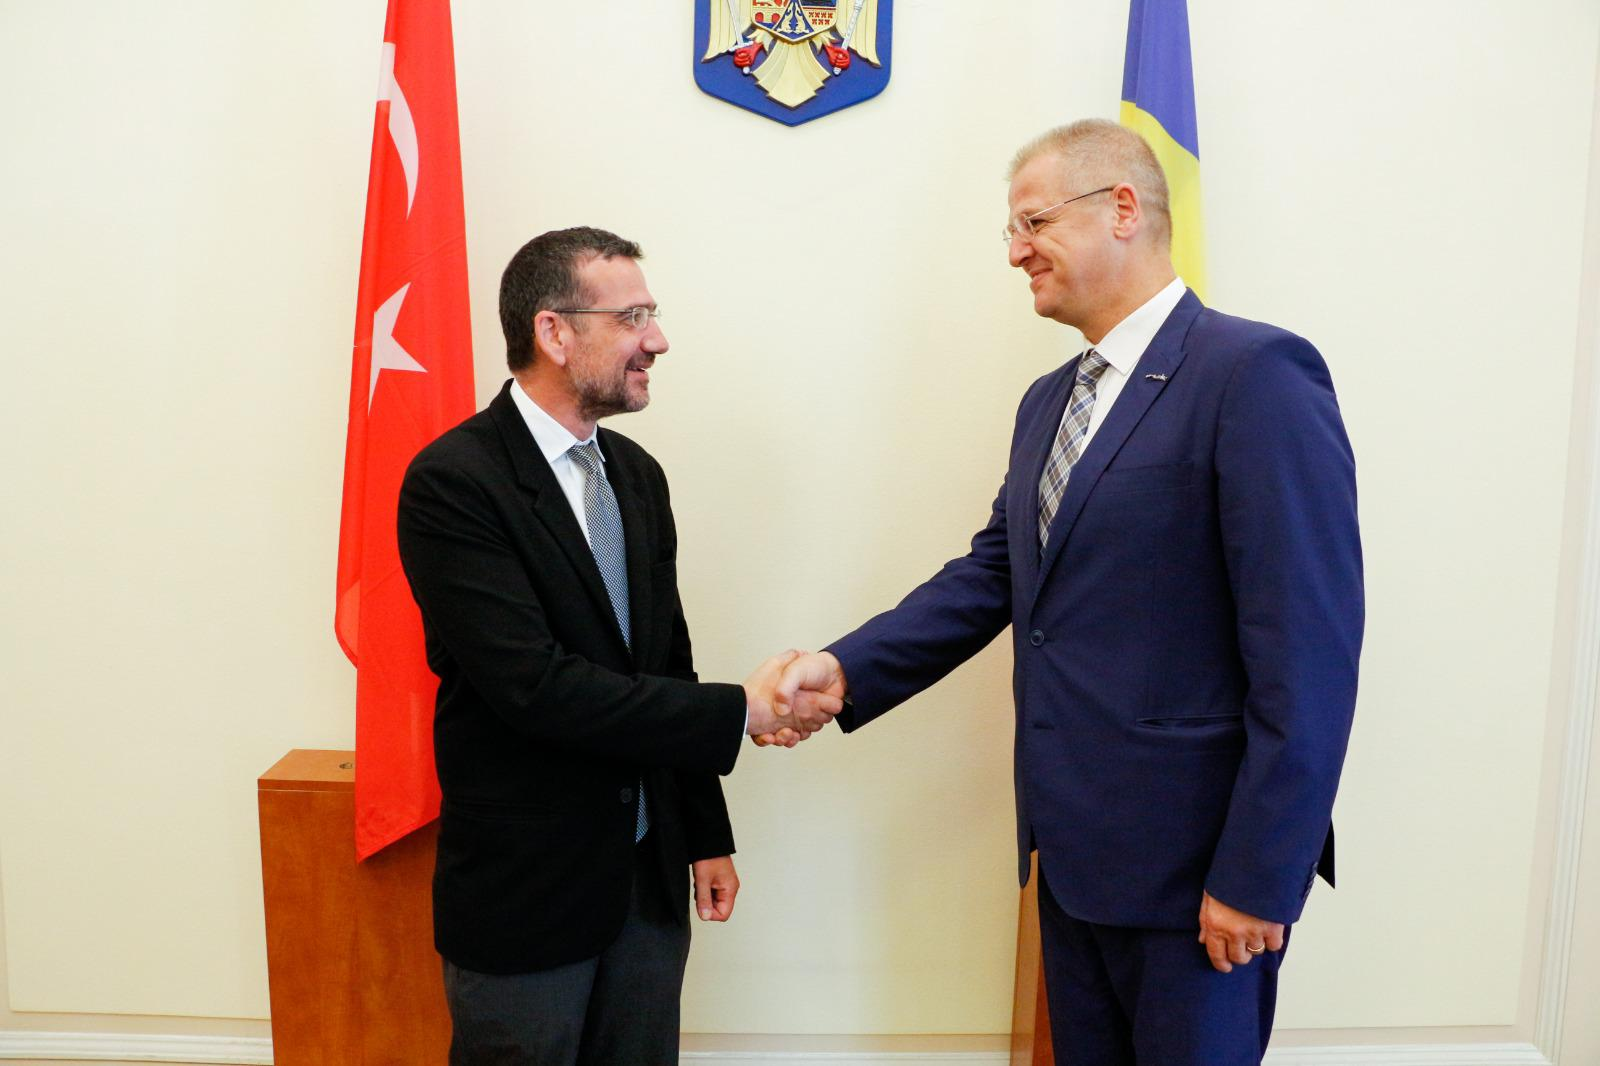 2-enver-unver--romanian-ministry-of-internal-affairs-002.jpeg